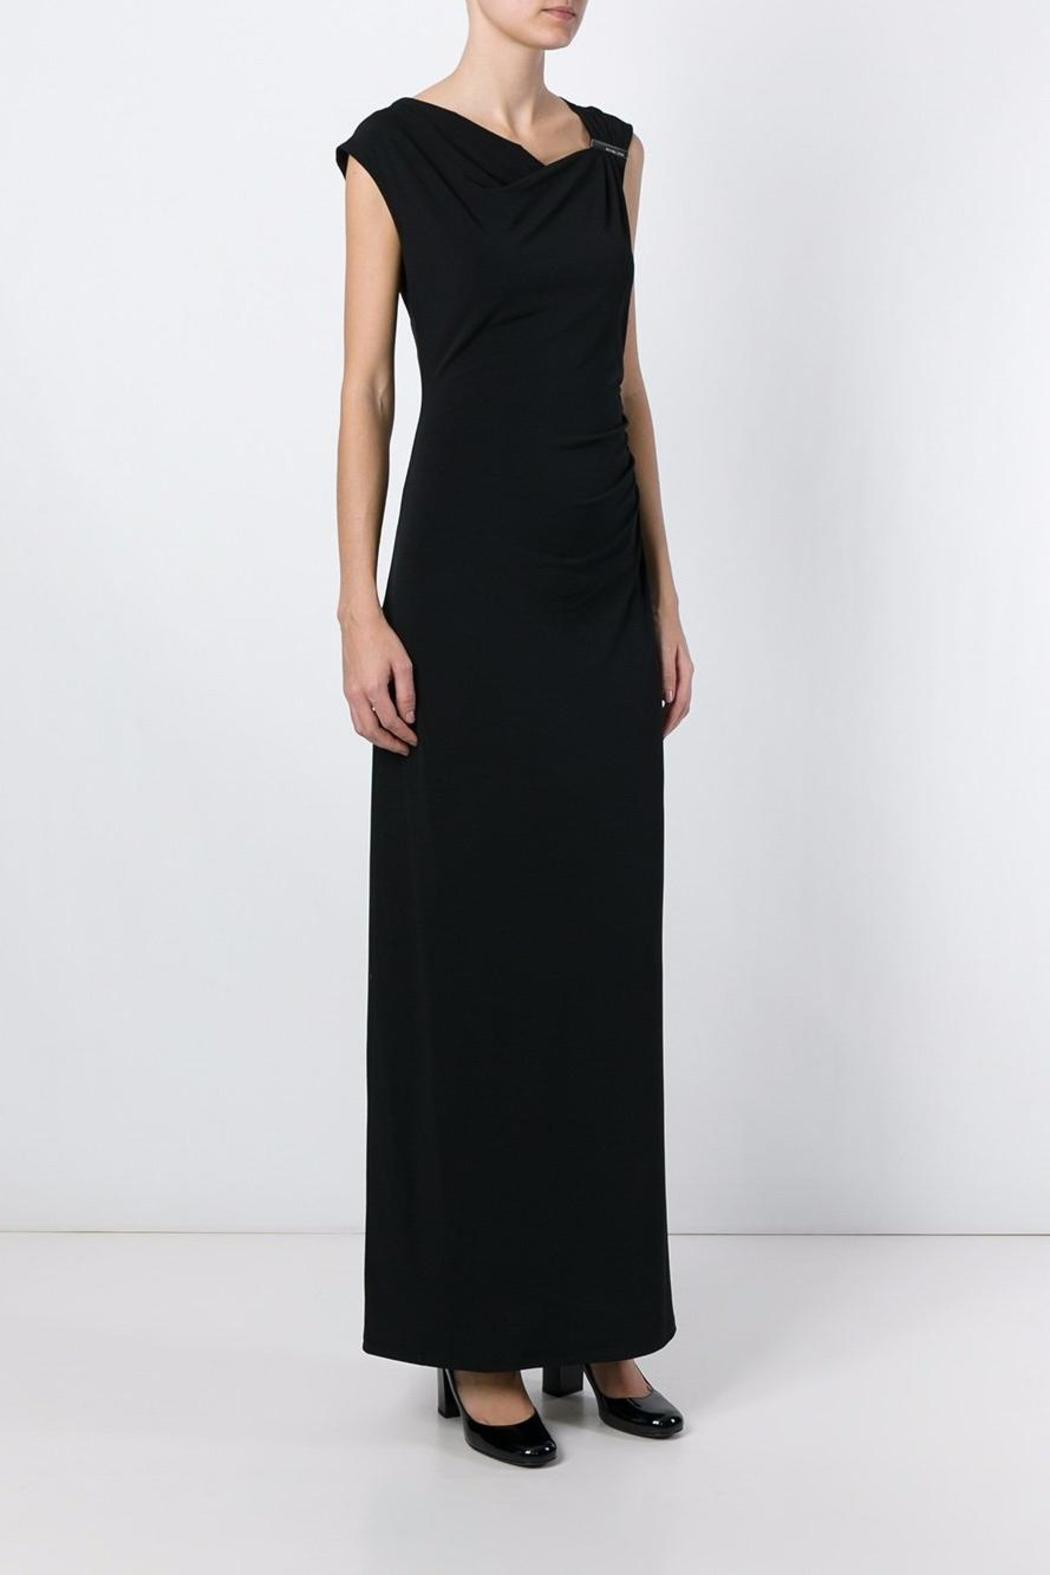 Michael by Michael Kors Side Slit Gown - Main Image